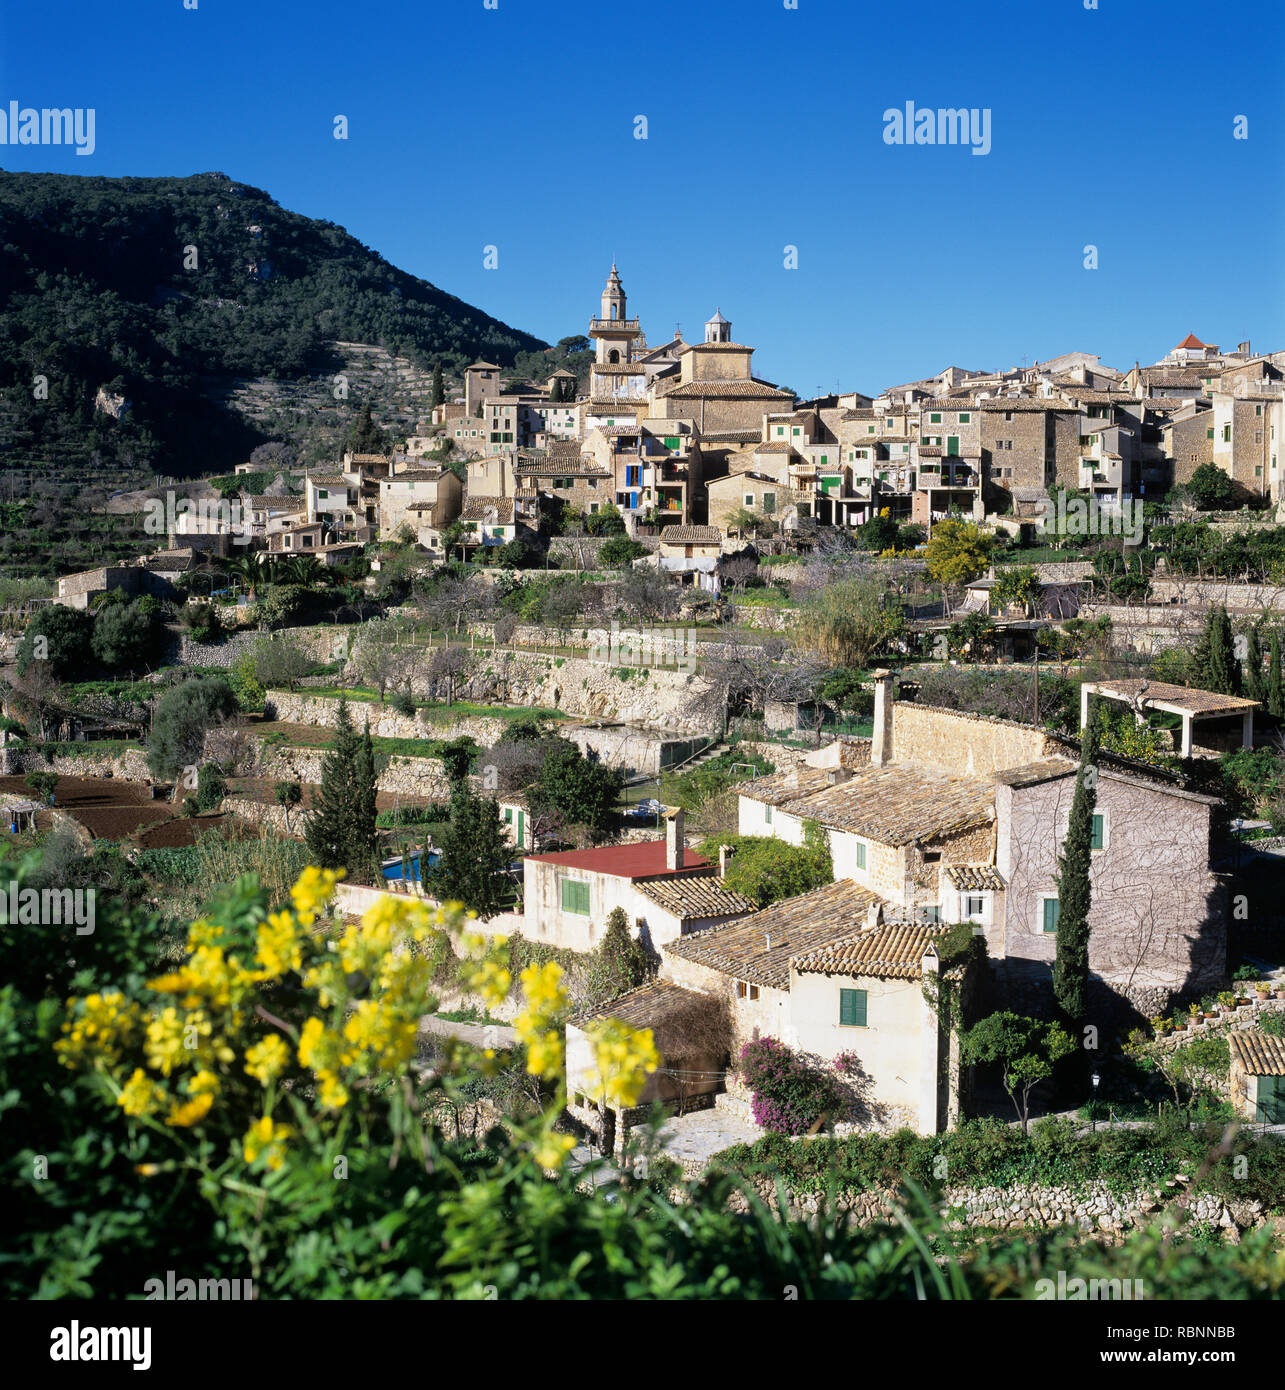 View of hilltop village of Valldemossa in spring, Majorca (Mallorca), Balearic Islands, Spain, Europe - Stock Image